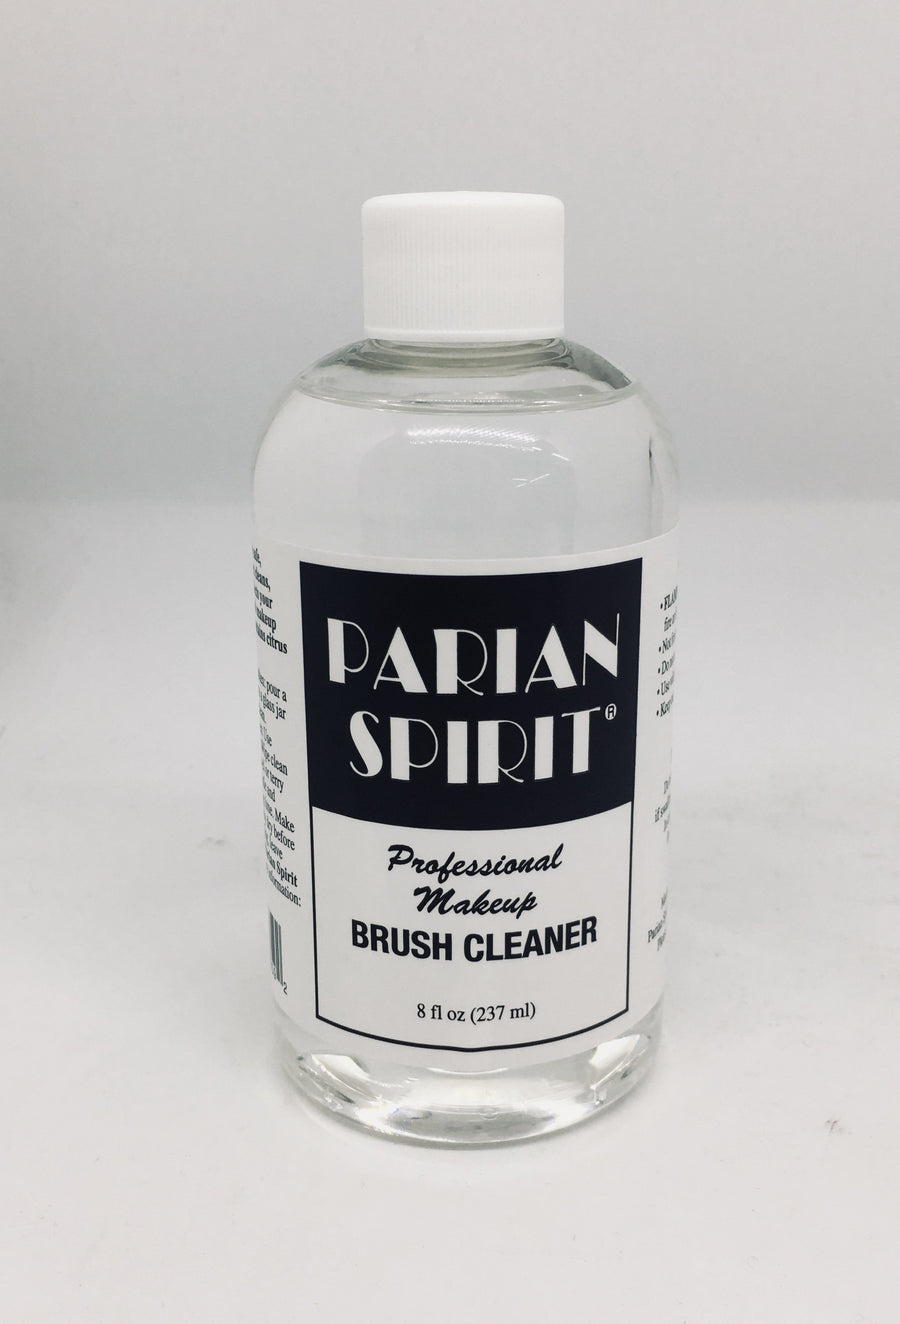 Parian Spirit- Professional Makeup Brush Cleaner  A real make up Artists favourite-cleans and conditions brushes with a natural citrus scent. 8fl oz/237ml  !!!!! This product is deemed 'hazardous product' for overseas. Please telephone shop to enquire about overseas delivery!!!!!